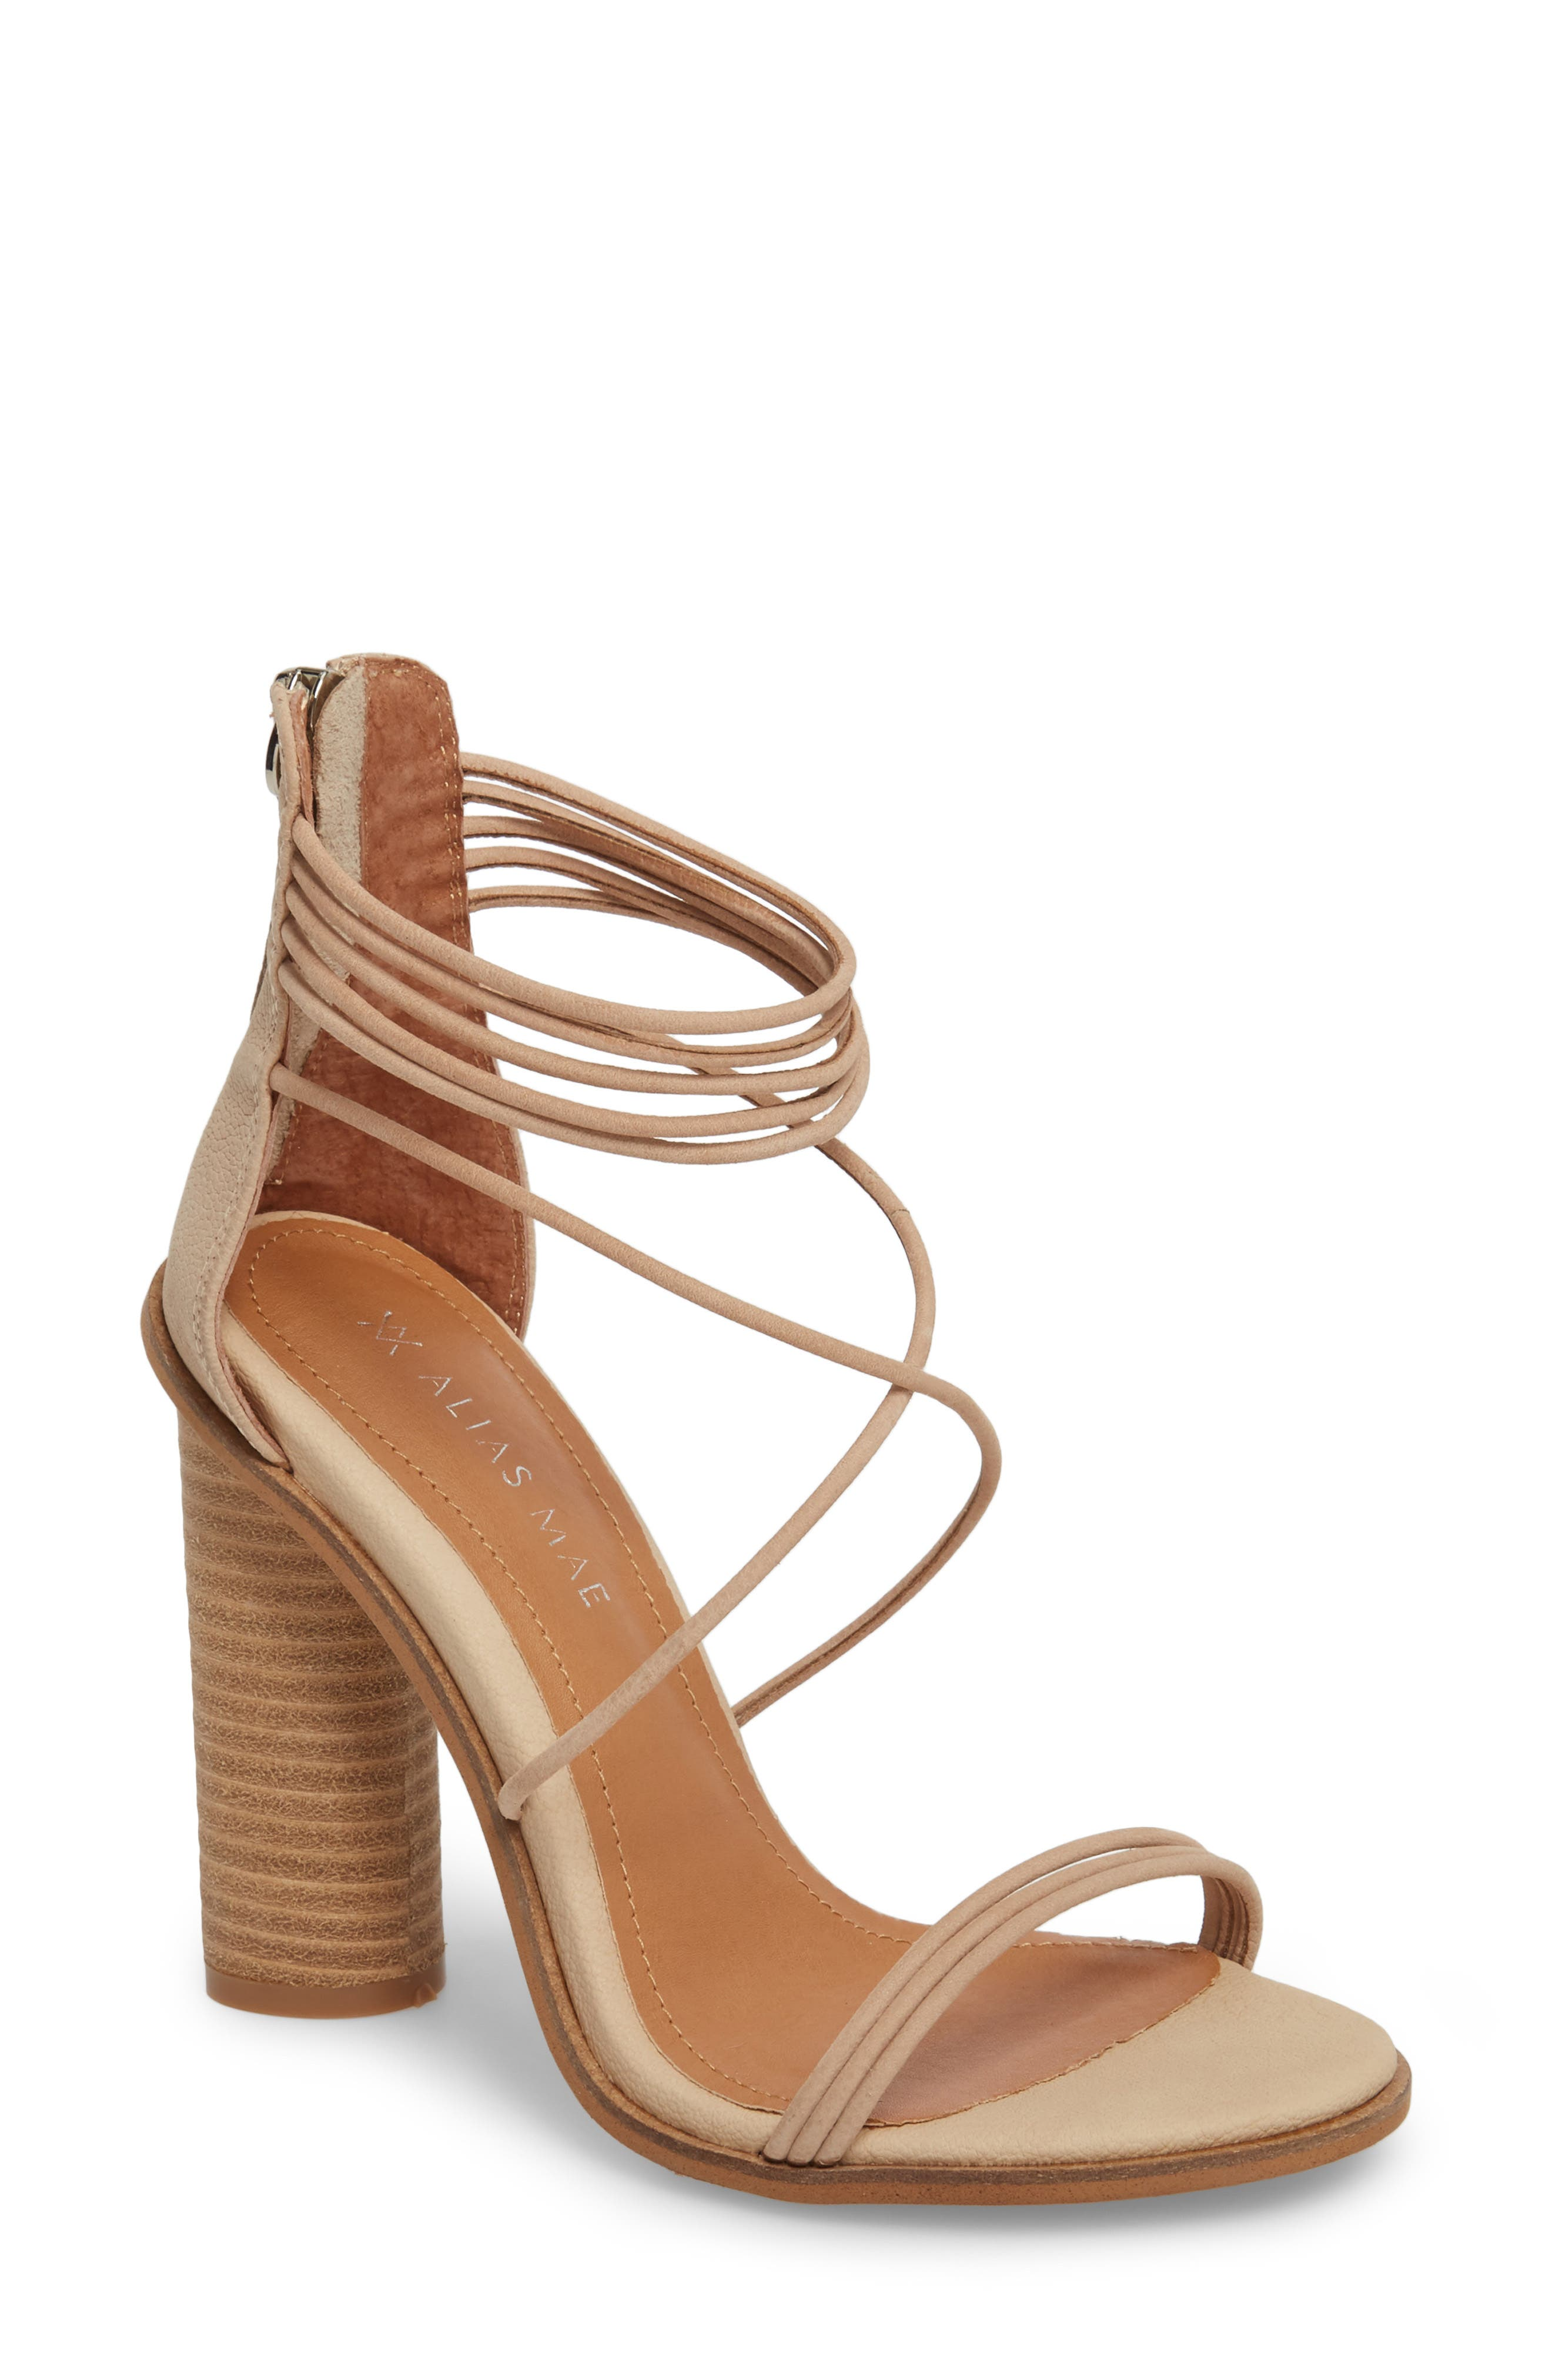 Aflux Tall Strappy Sandal,                         Main,                         color, Natural Leather